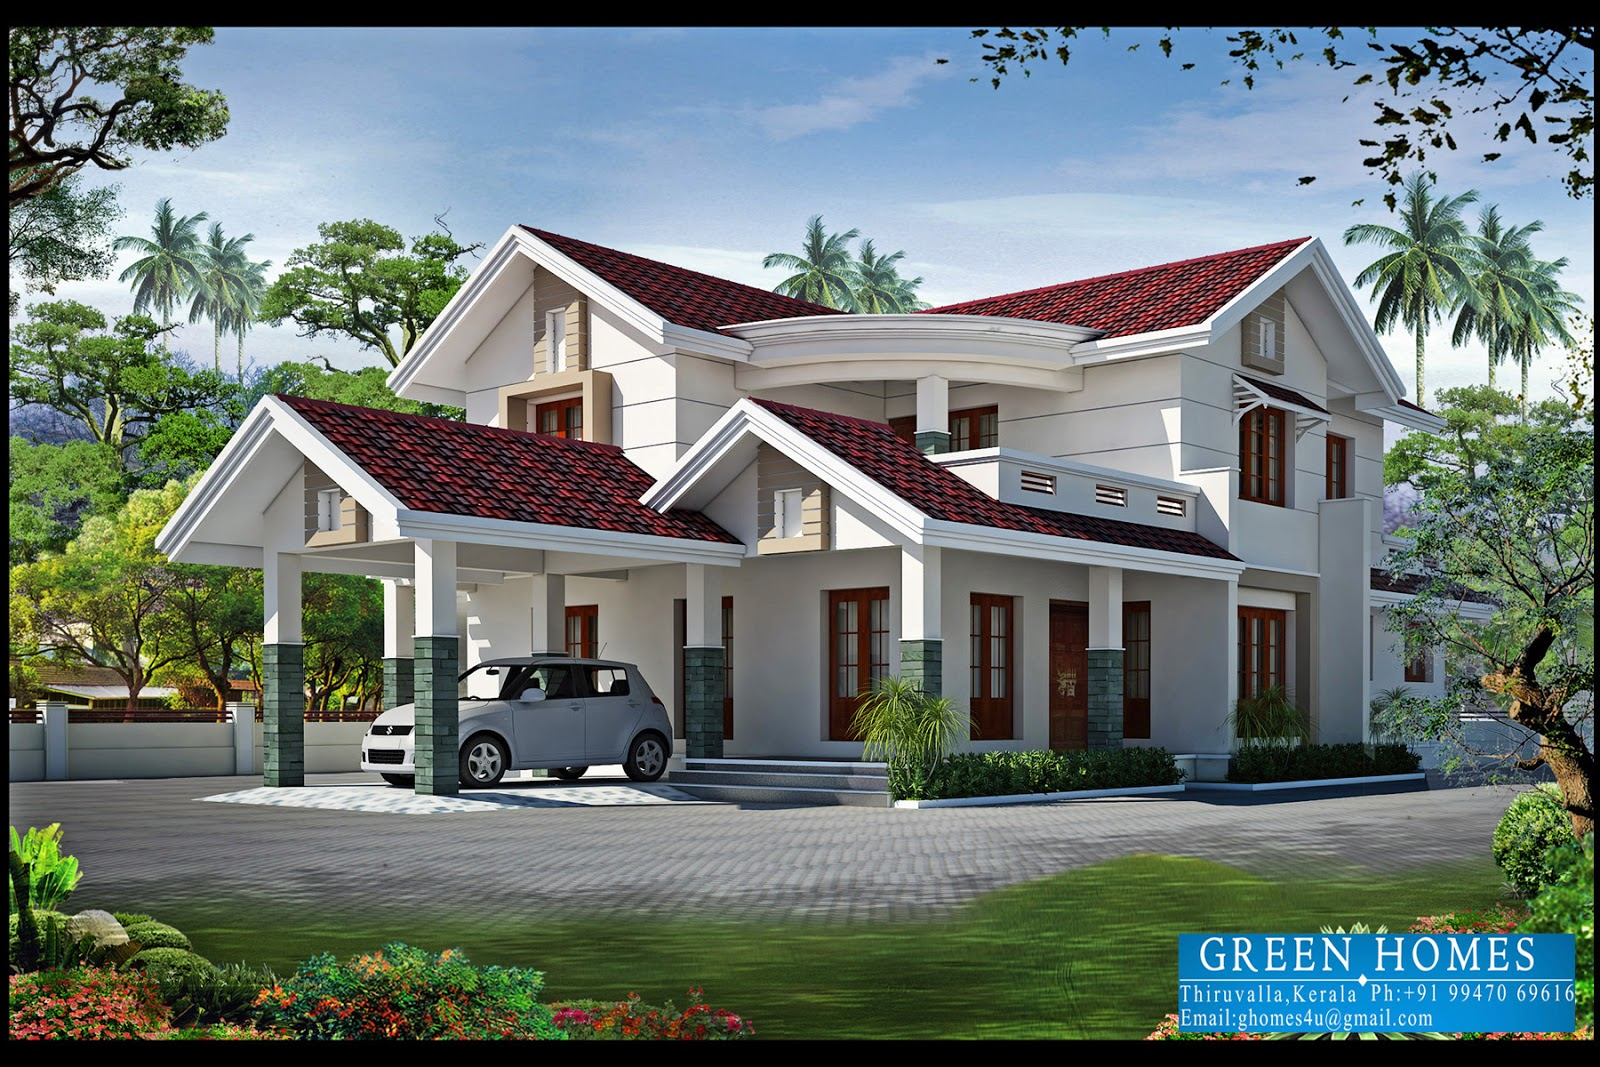 Green homes 4bhk kerala home design 2550 for Kerala house models photos